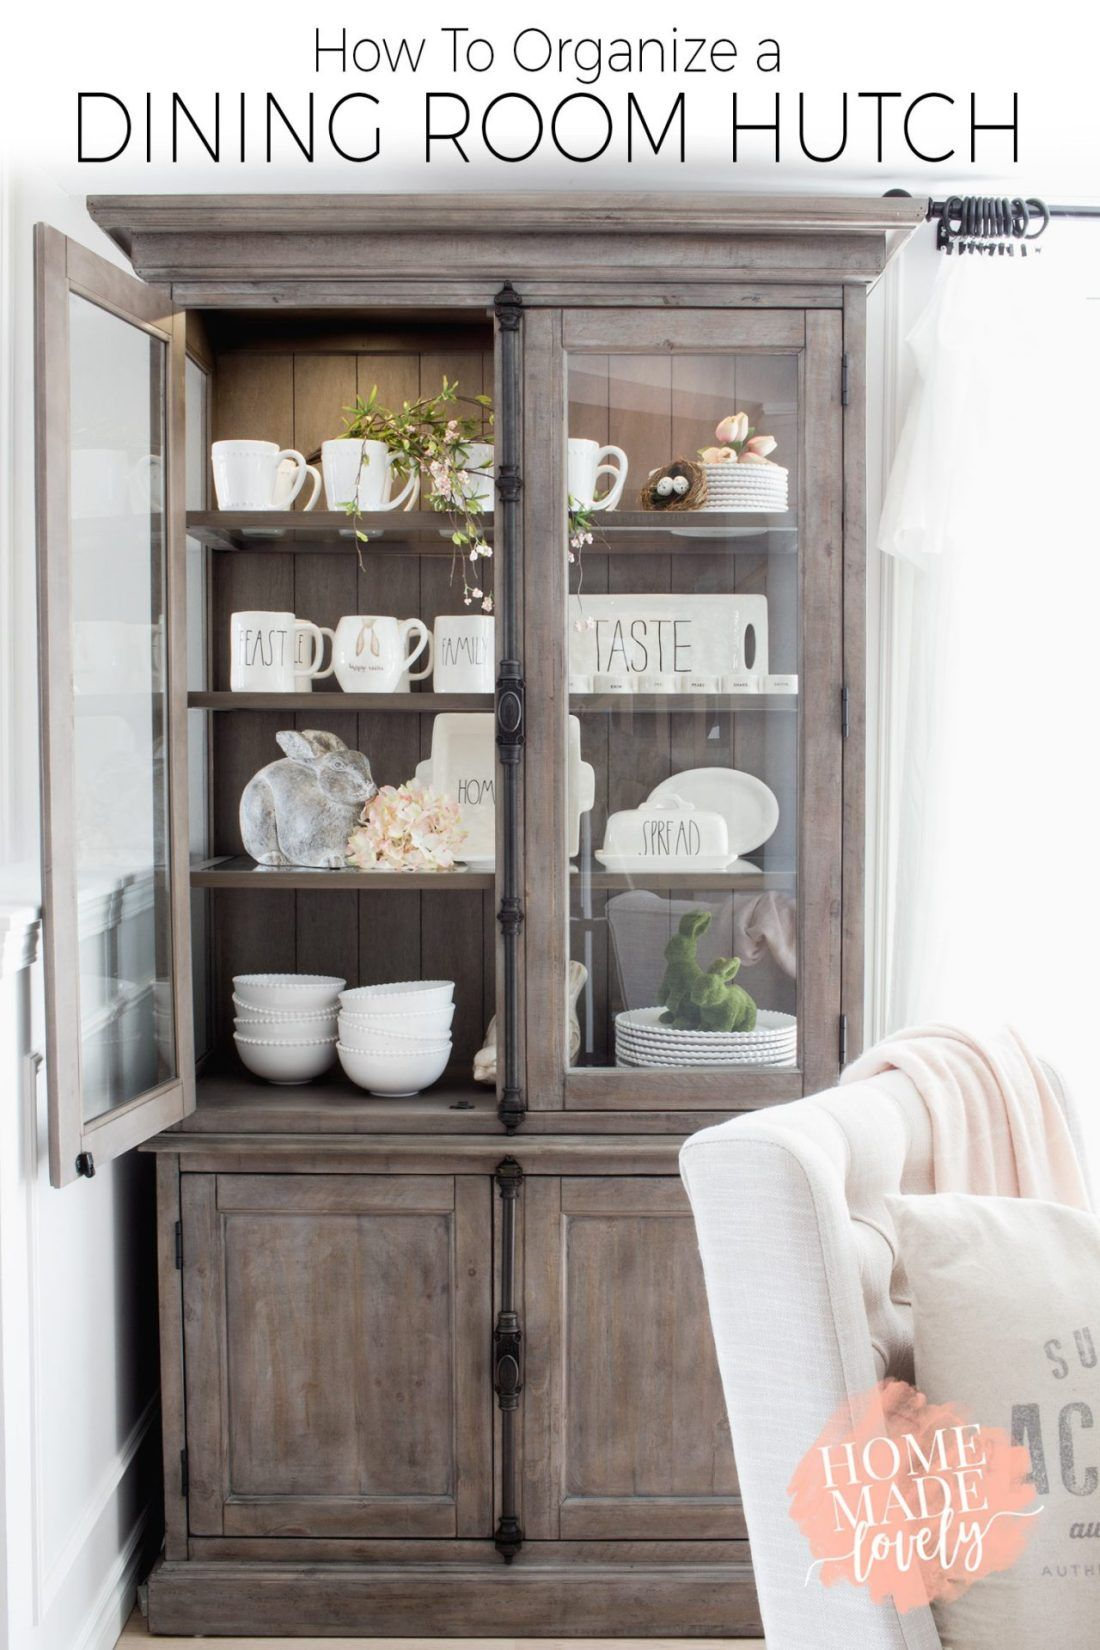 Dining Room Shelves If You Have Pretty Things Like Napkins Placemats Napkin Rings Etc And